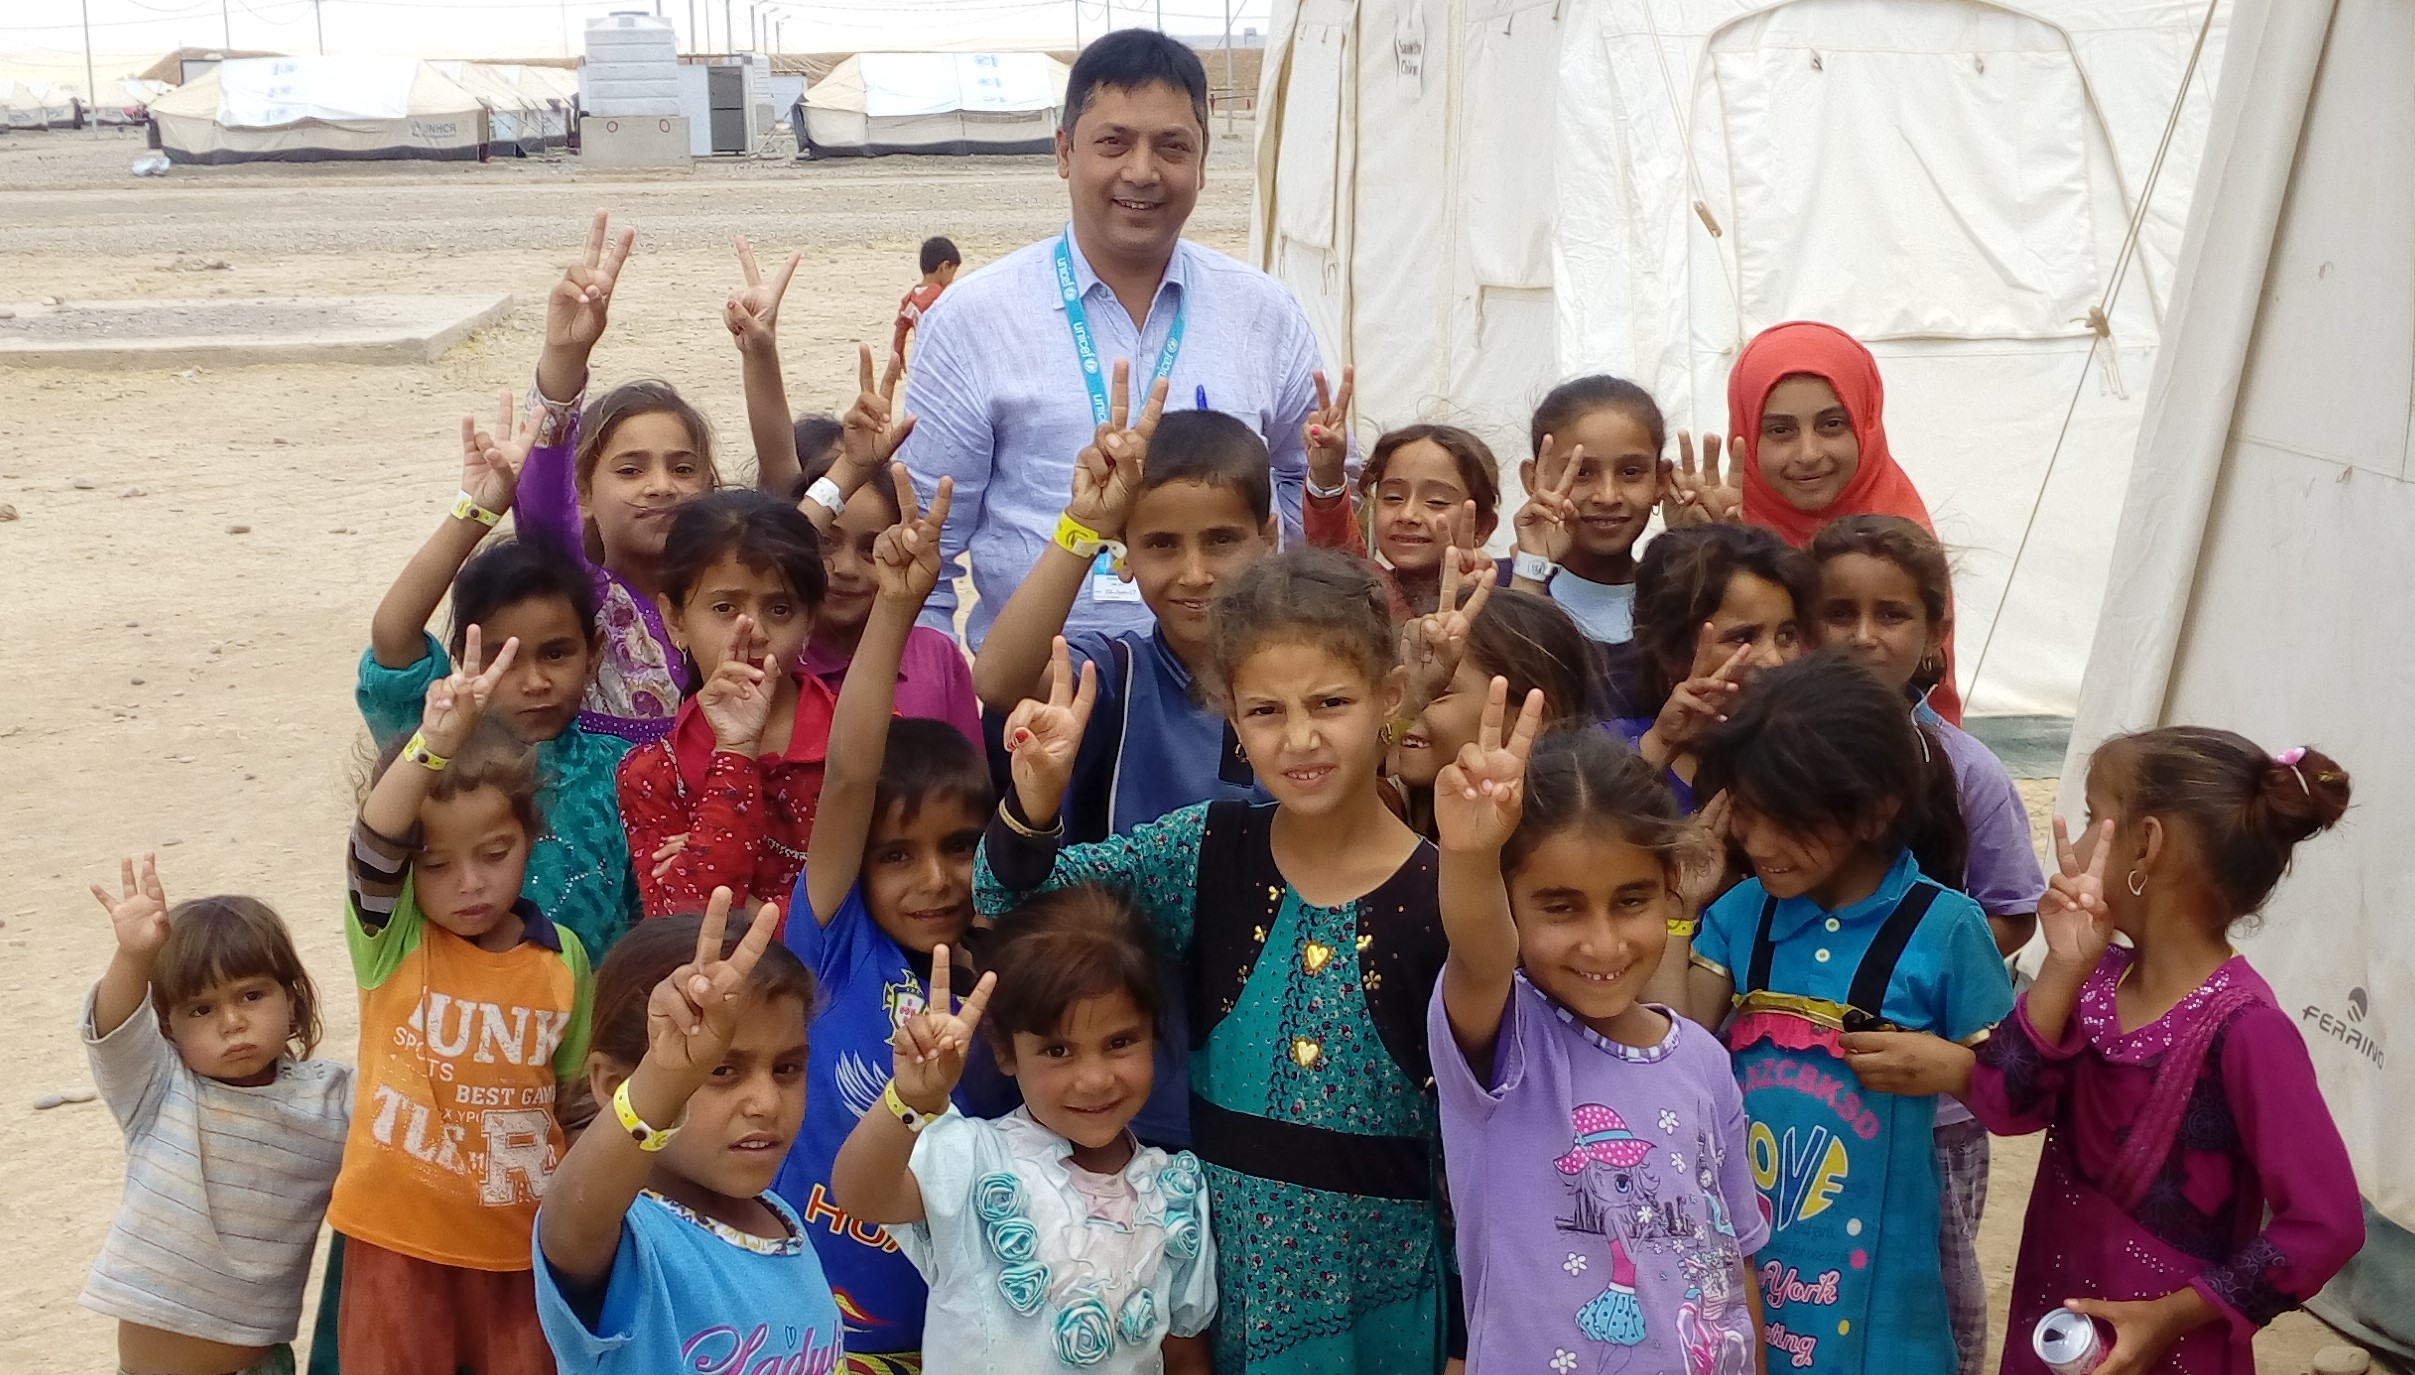 Smiling children and STOP participant in Syria after successful vaccination campaign